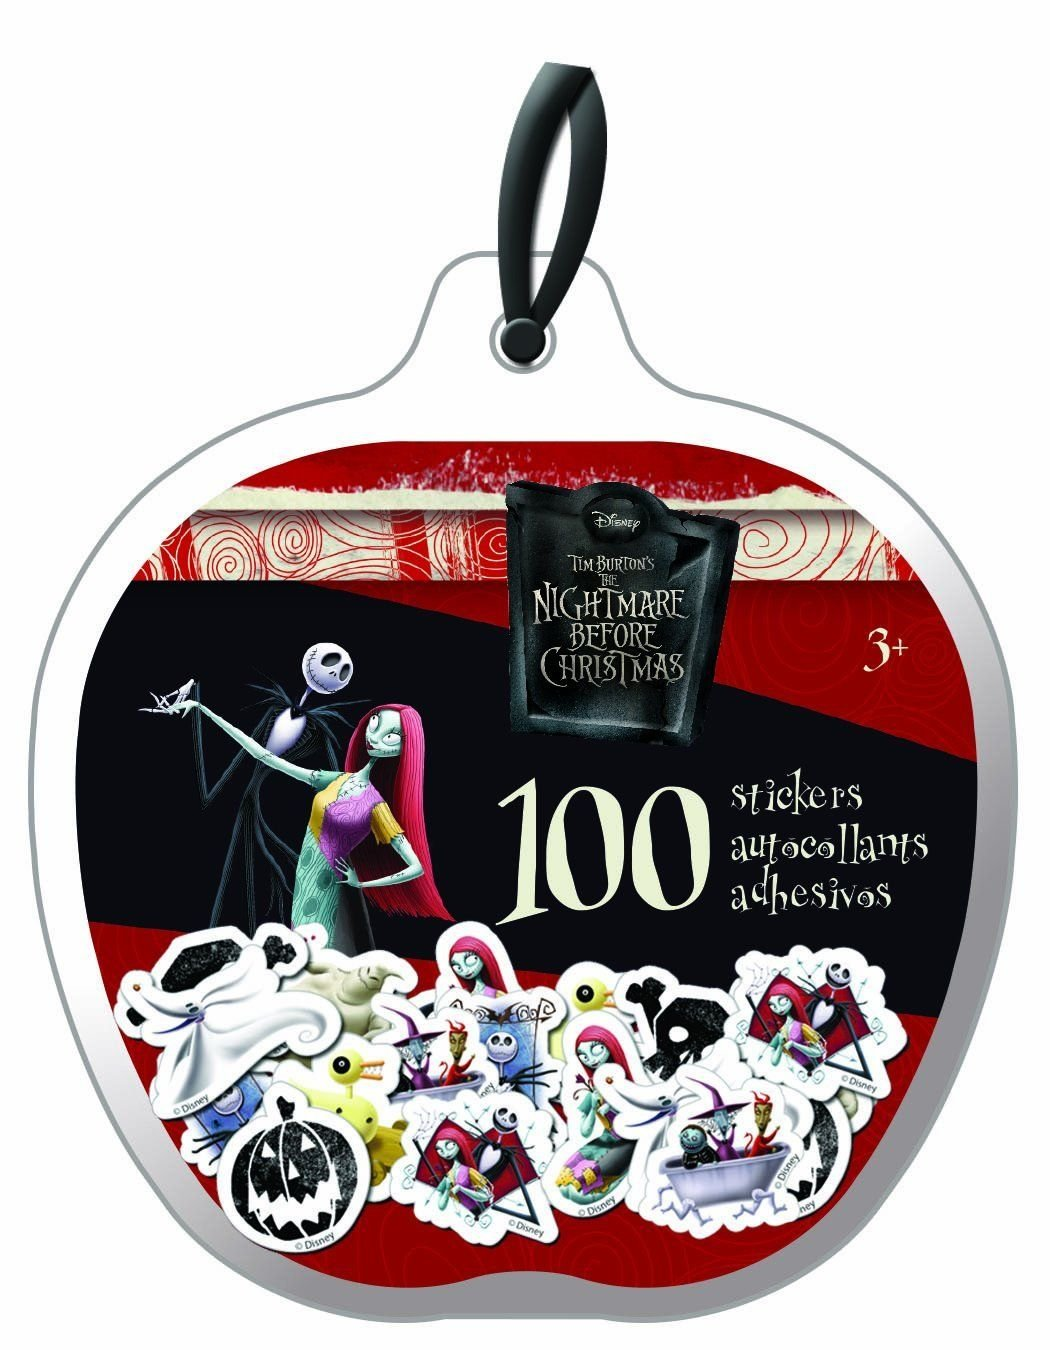 Buy Nightmare Before Christmas Stickers - 100 Mini Stickers Online ...